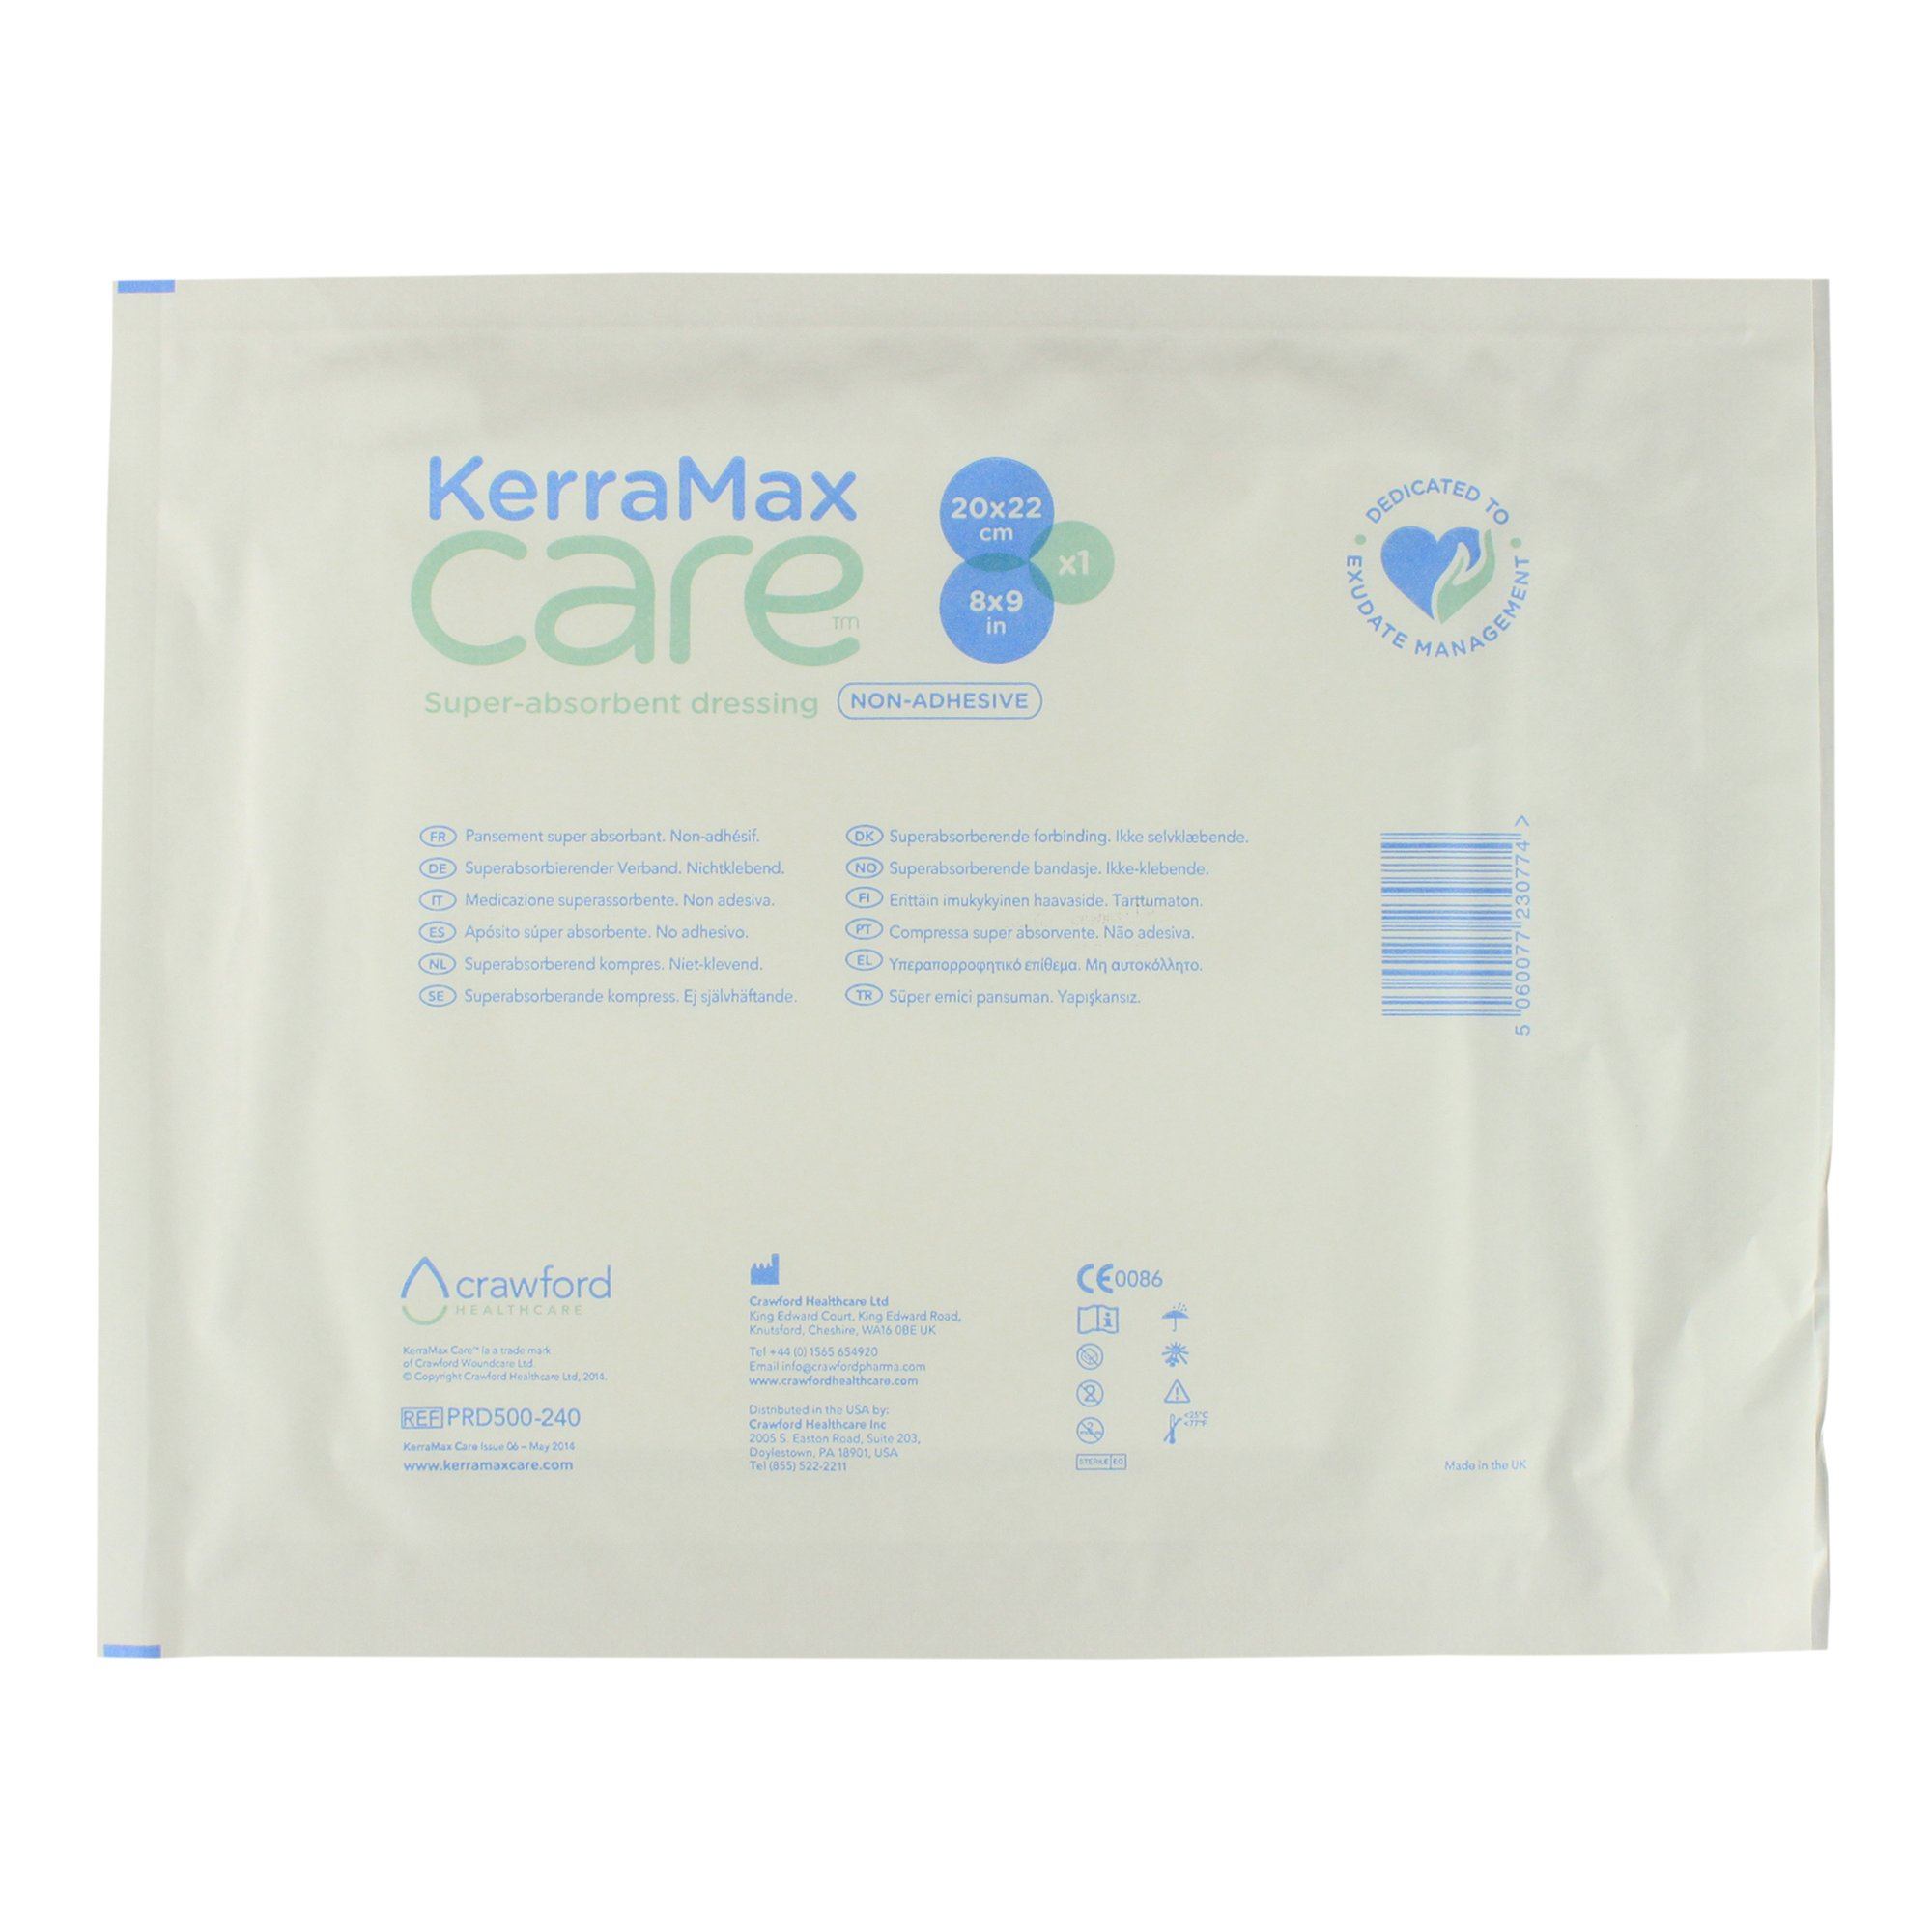 KerraMax Care 8''x9'' Super Absorbent Wound Dressing (PRD500-240) – Absorbs Exudate and Isolates it, Preventing Leaks or Drips for Improved Patient Comfort and Wound Care Treatment (1 Each)